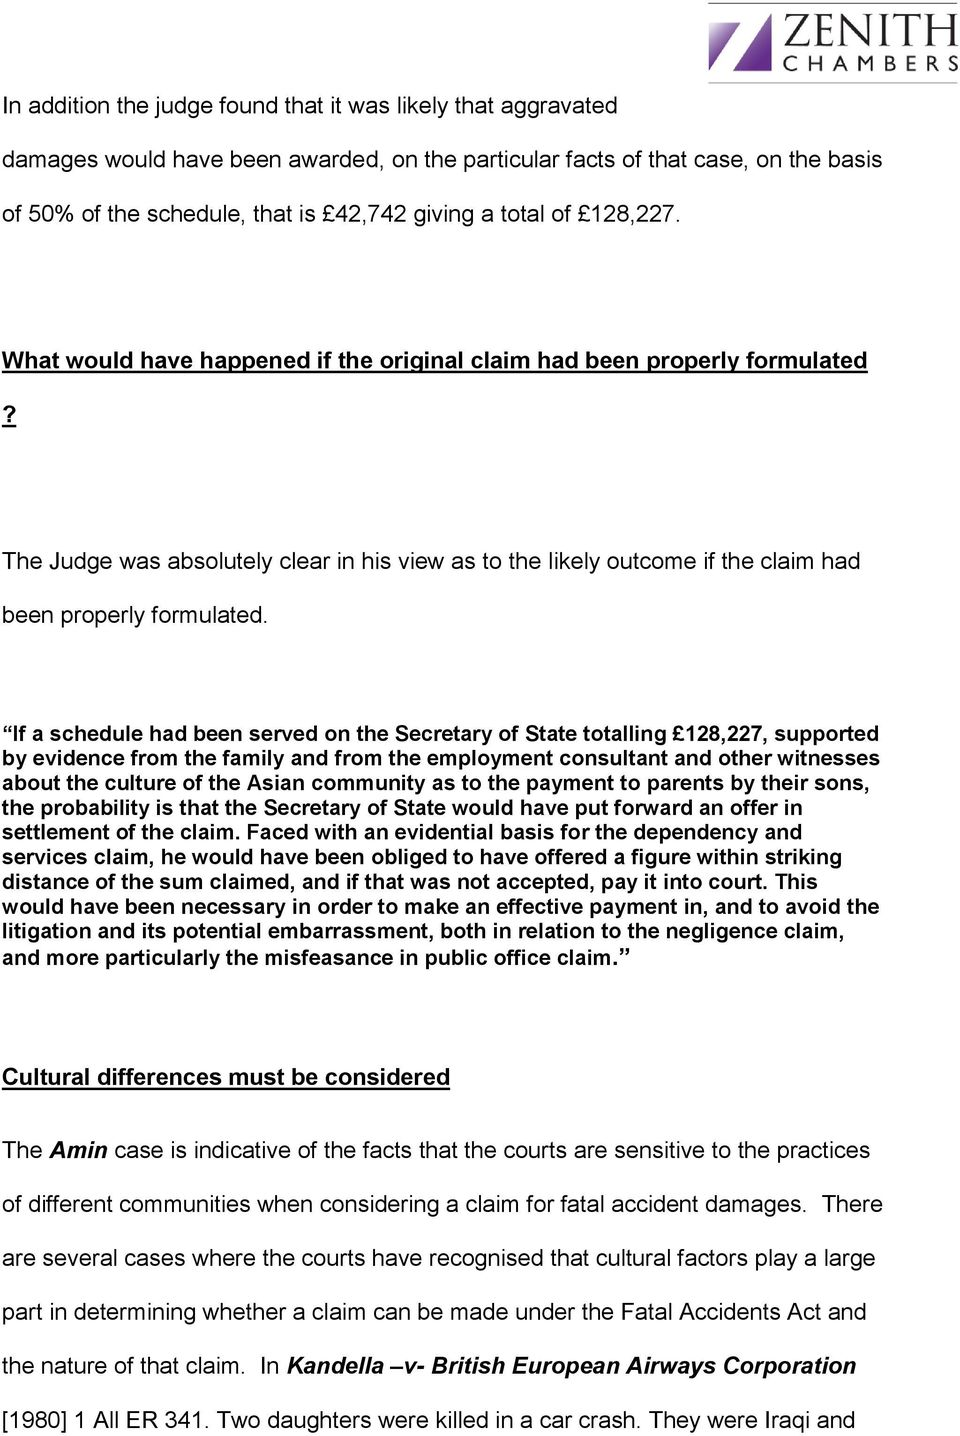 The Judge was absolutely clear in his view as to the likely outcome if the claim had been properly formulated.